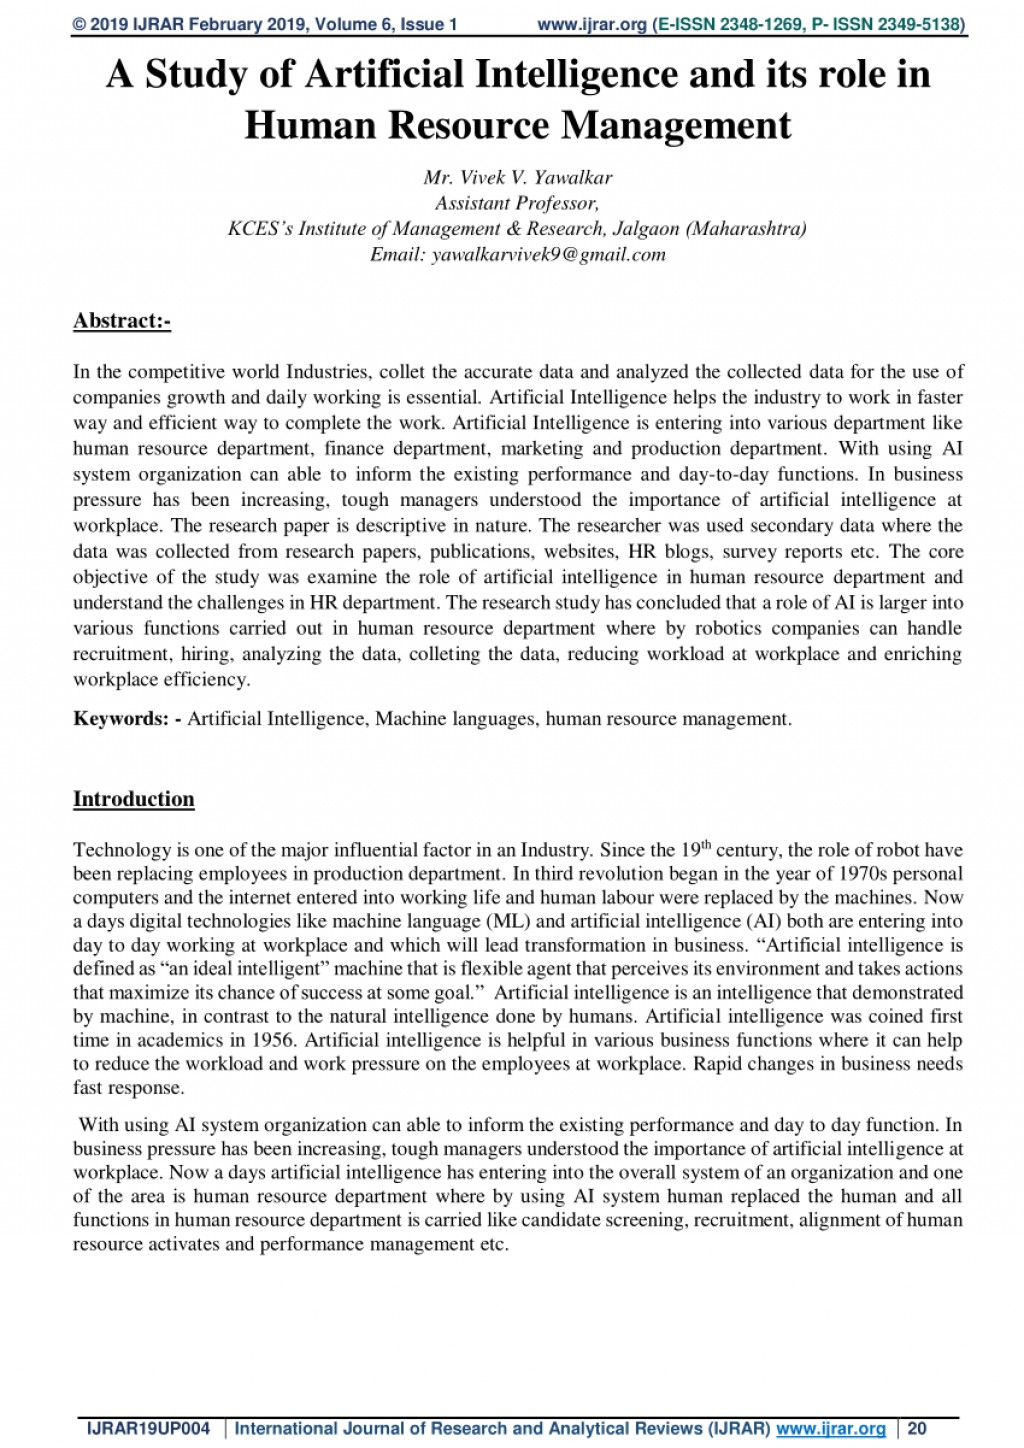 004 Artificial Intelligence Research Paper Awful 2019 Large